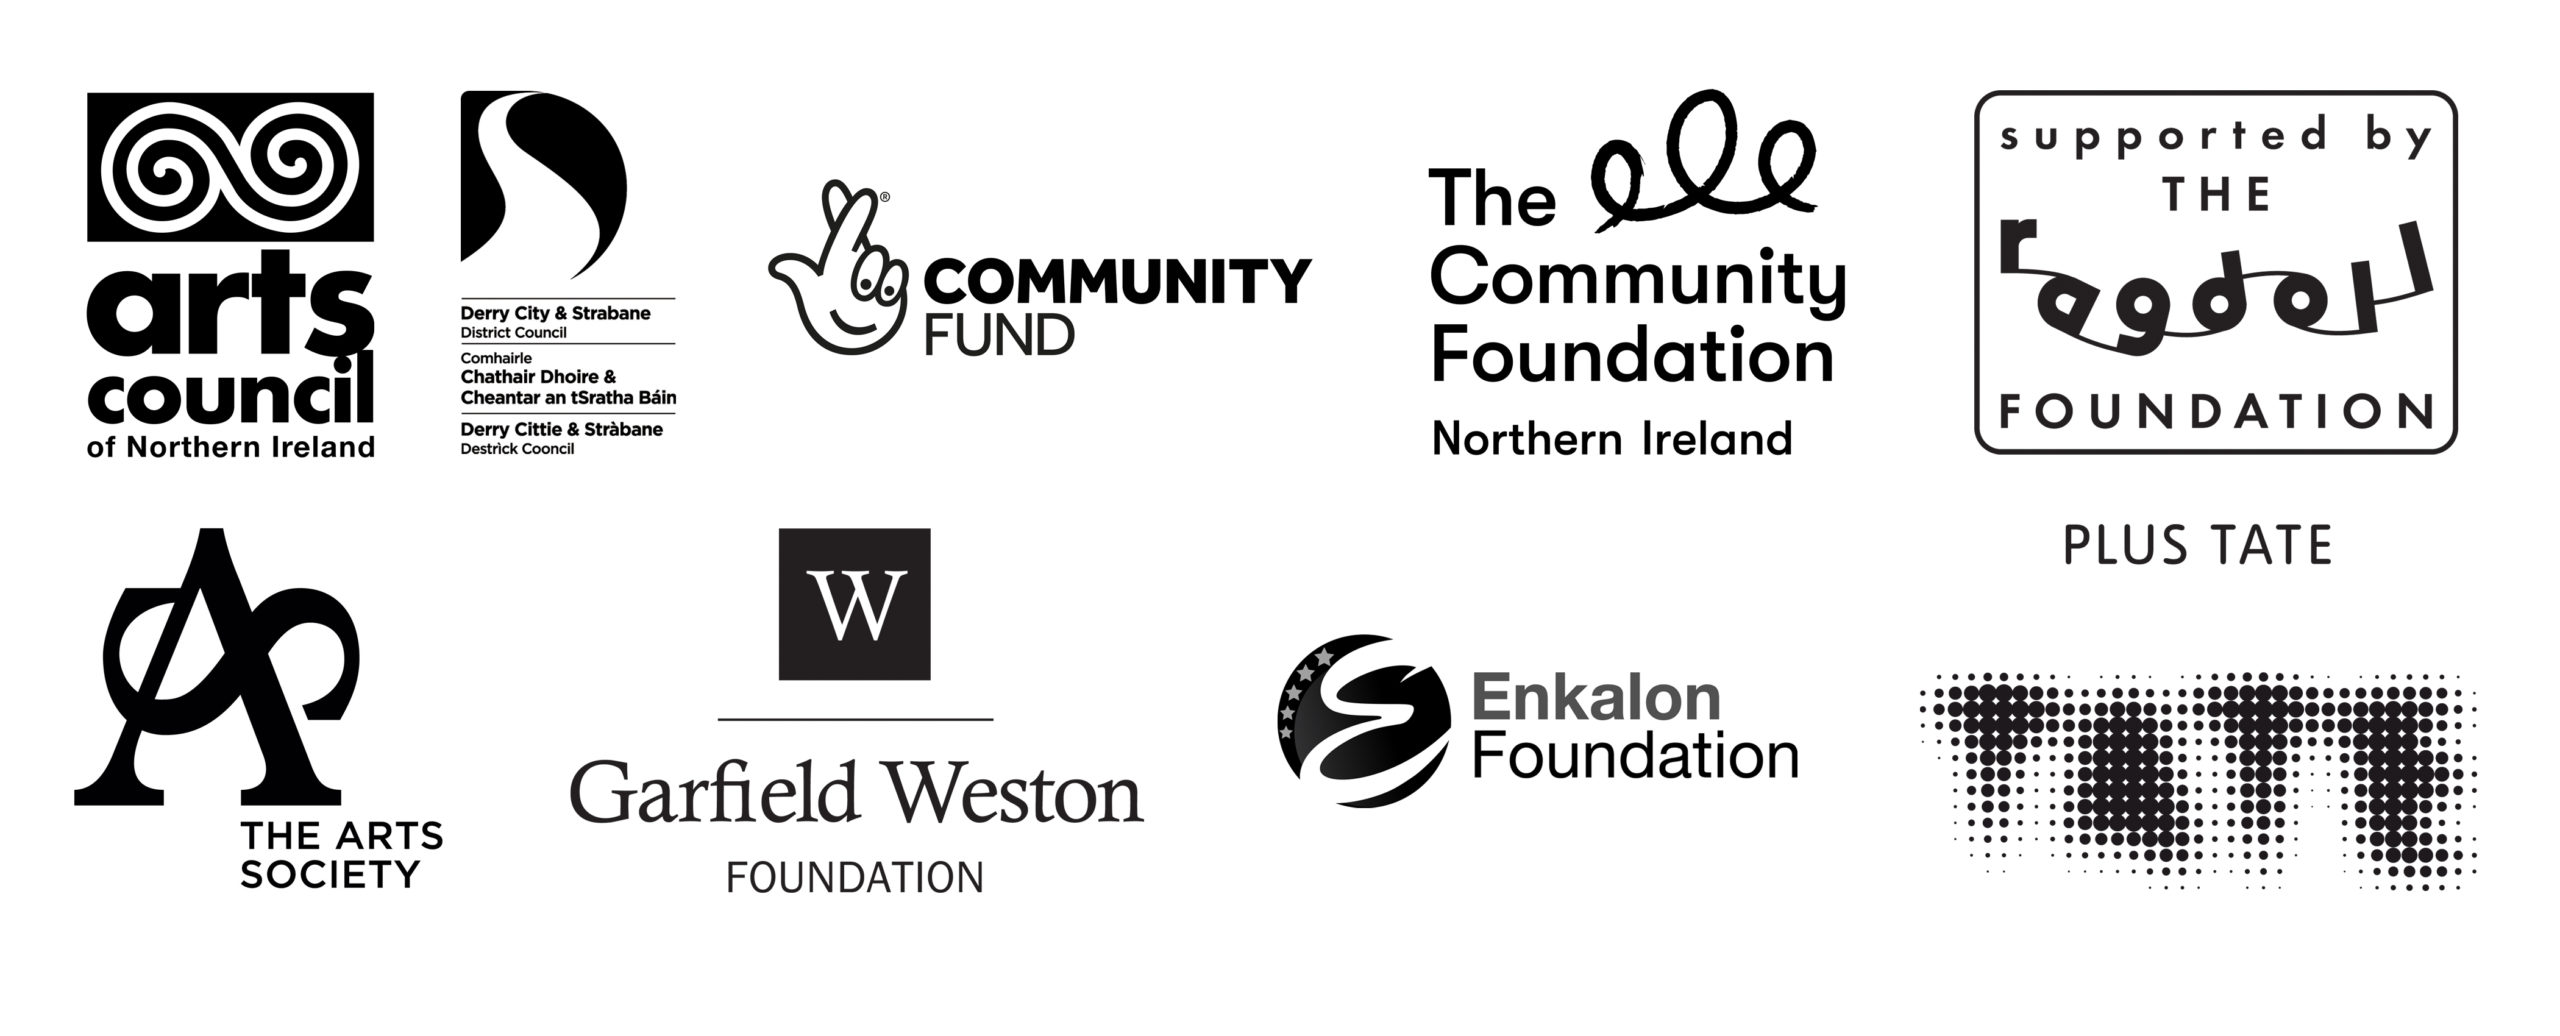 Funders for Void Gallery in 2021: Arts Council of Northern Ireland, Derry City and Strabane District Council, Community Fund, The Community Foundation for Northern Ireland, The Ragdoll Foundation, The Arts Society, Garfield Weston Foundation, Enkalon Foundation, Plus Tate